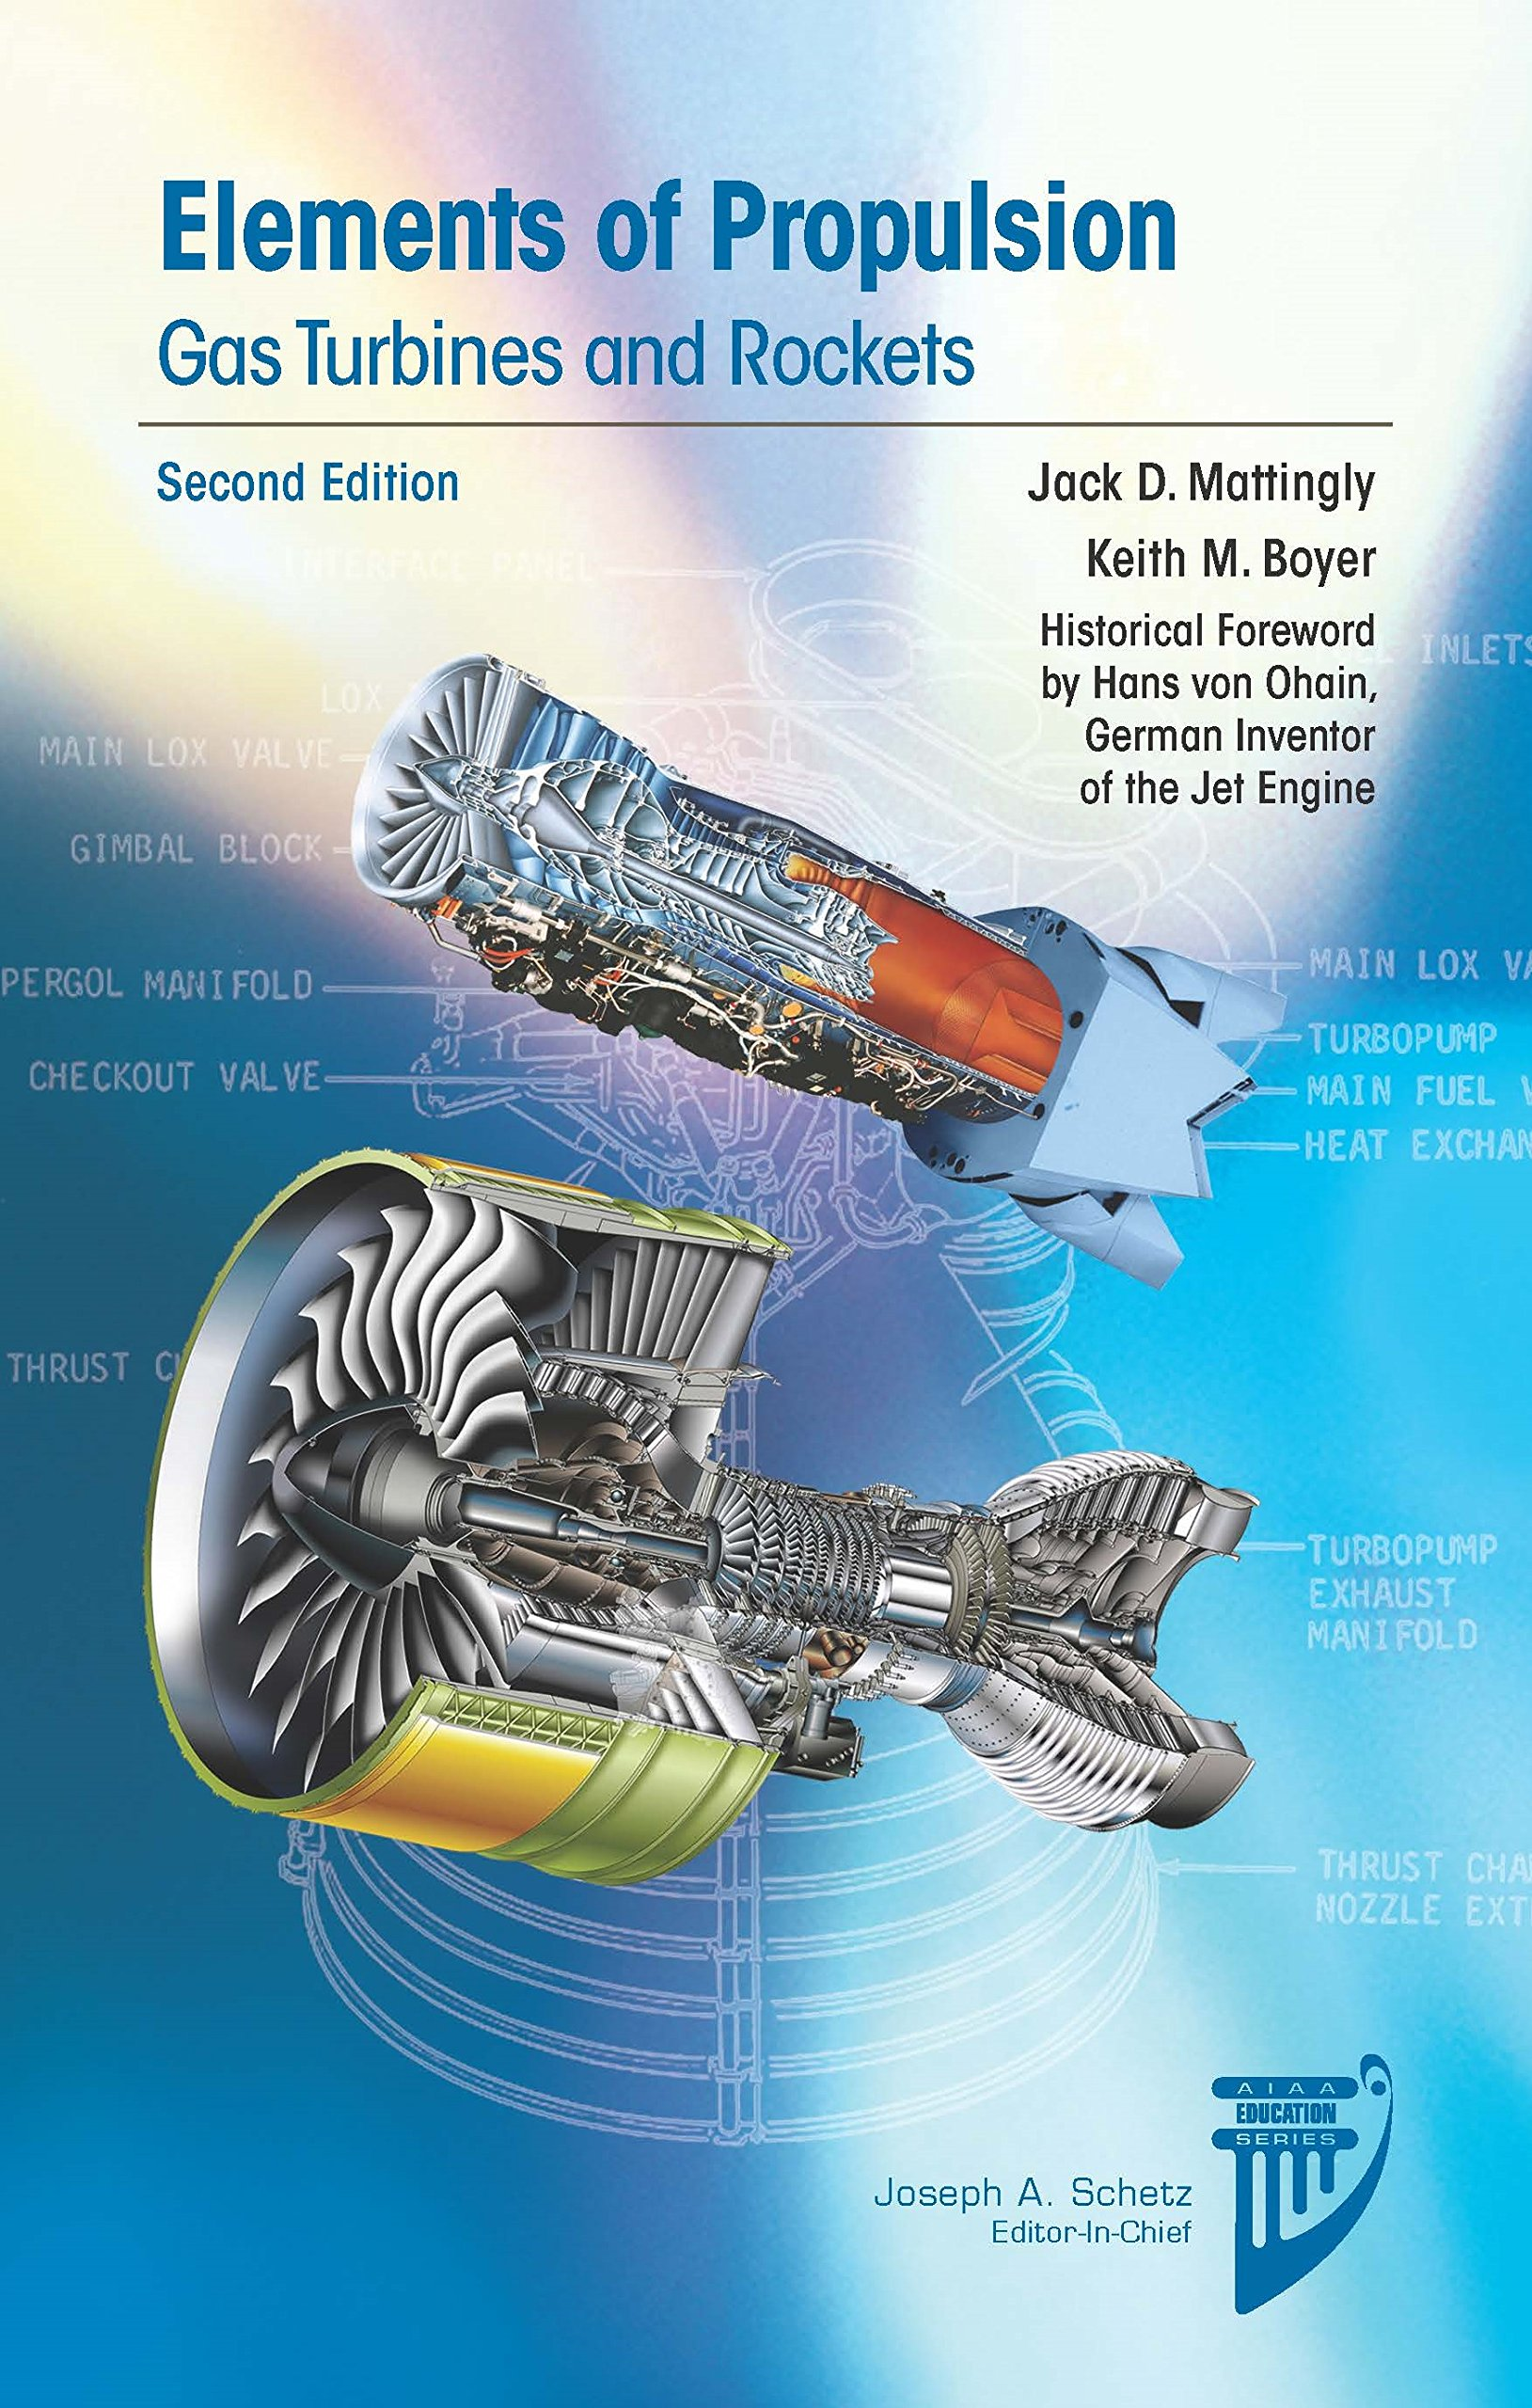 Buy Elements of Propulsion Gas Turbines and Rockets AIAA